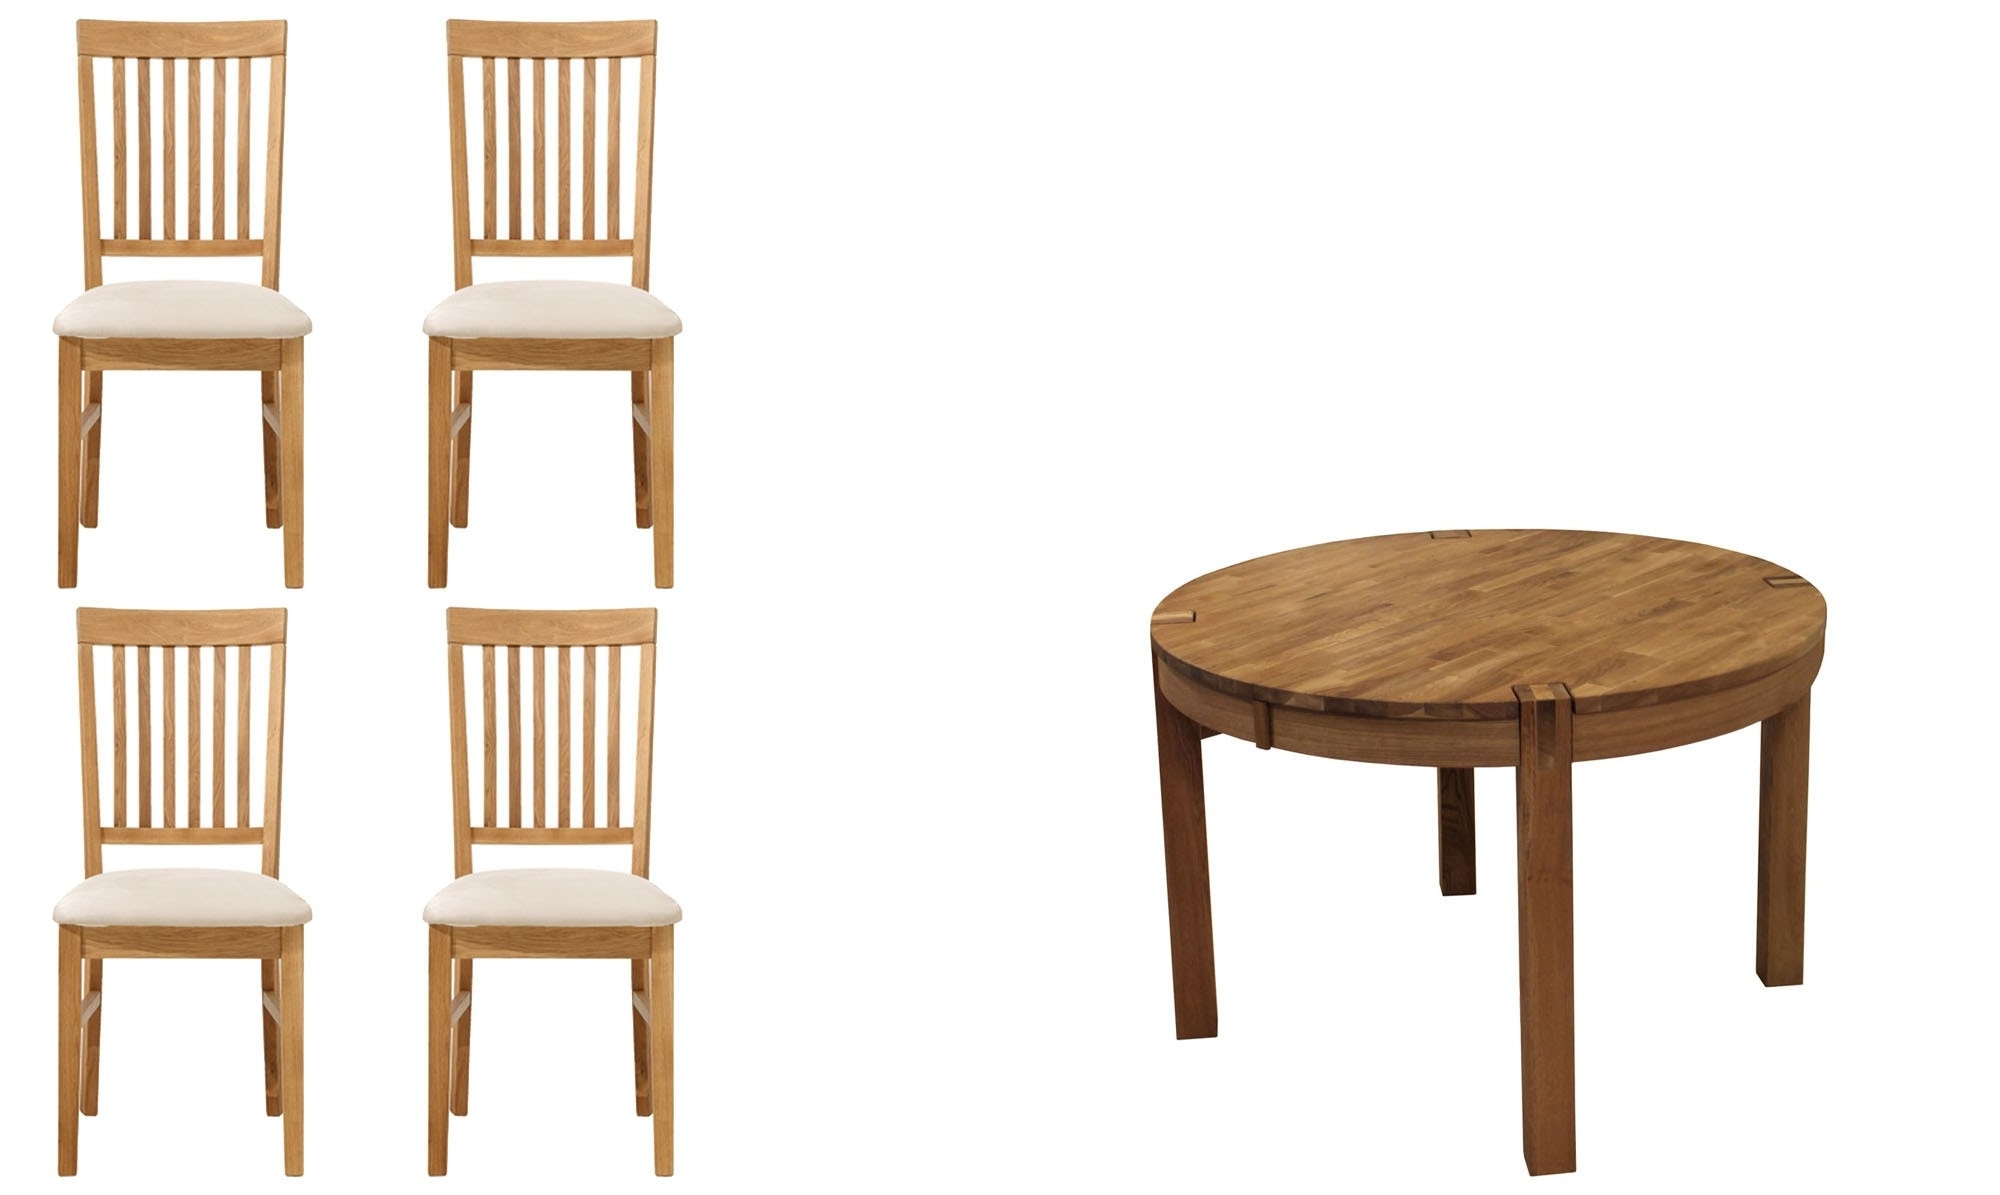 Round Extending Oak Dining Tables And Chairs With Regard To Recent Royal Oak – Round Extending Dining Table Sets – Fishpools (View 7 of 25)